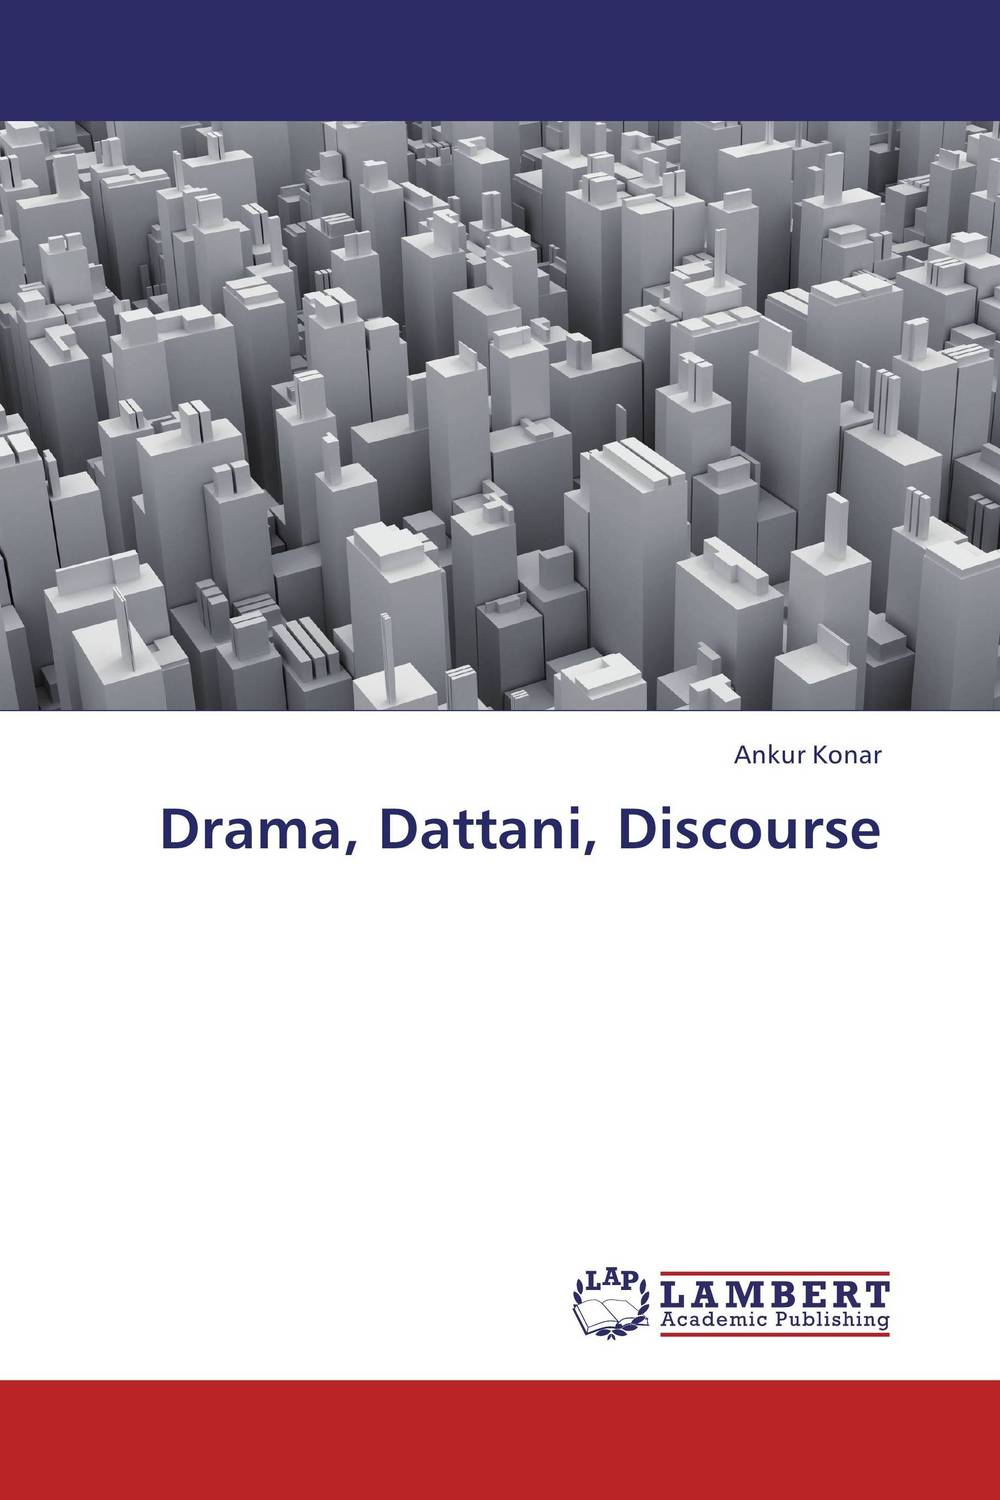 Drama, Dattani, Discourse kishore ram indian readings on indian writings in english